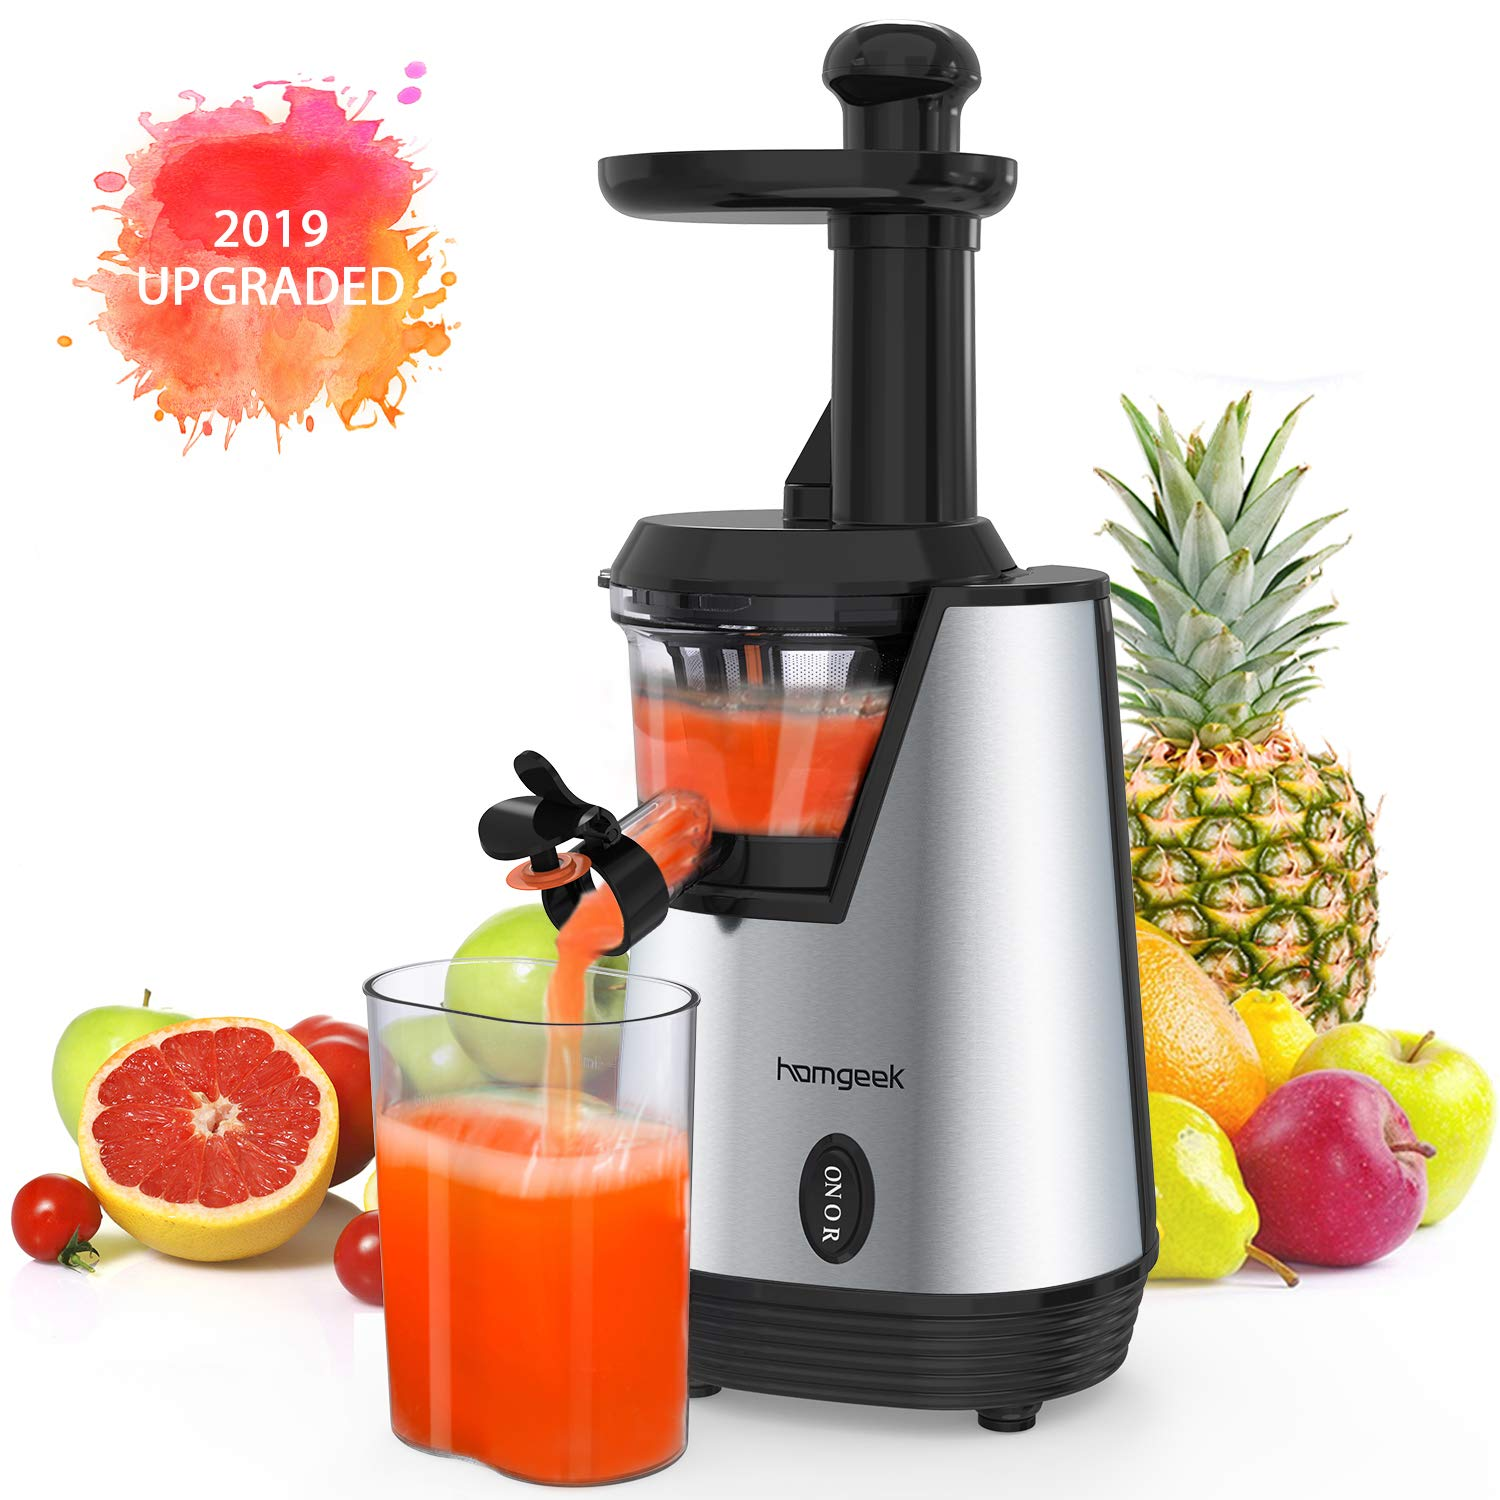 Homgeek Juicer Slow Masticating Juicer Extractor, Cold Press Juicer Machine, Quiet Motor and Reverse Function, with Juice Jug and Brush to Clean Conveniently, High Nutrient Fruit and Vegetable Juice